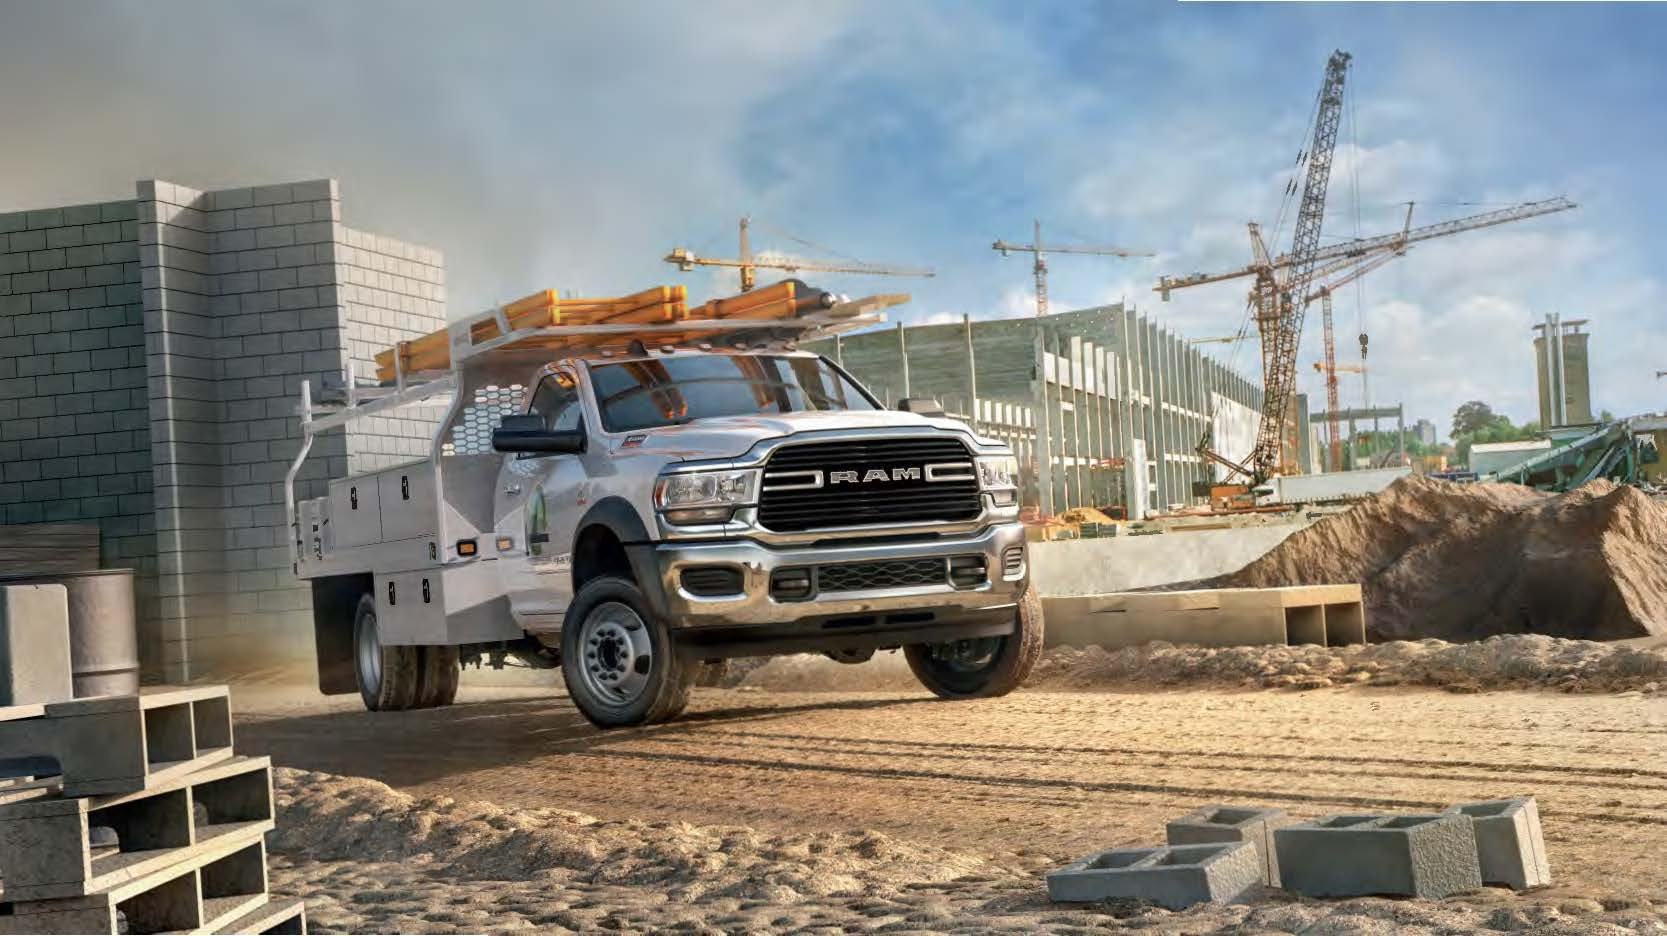 2019 Ram 2500 through 5500 Chassis Cab models come in four trim levels